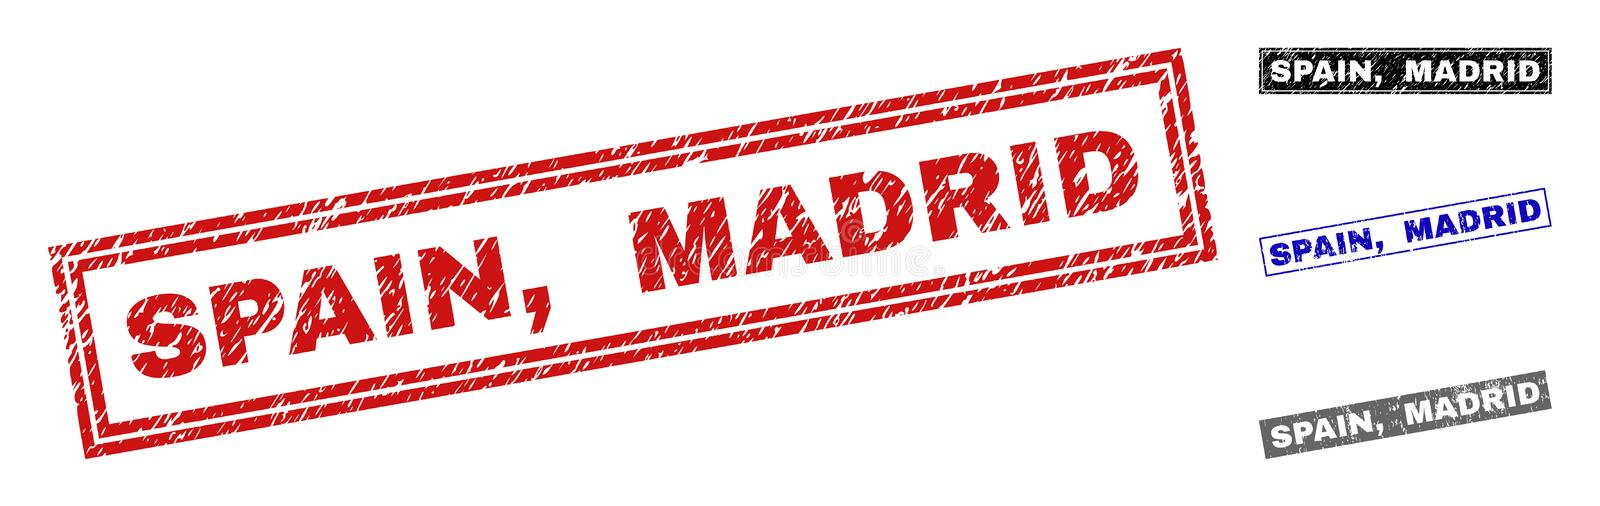 Grunge SPAIN, MADRID Scratched Rectangle Watermarks royalty free illustration